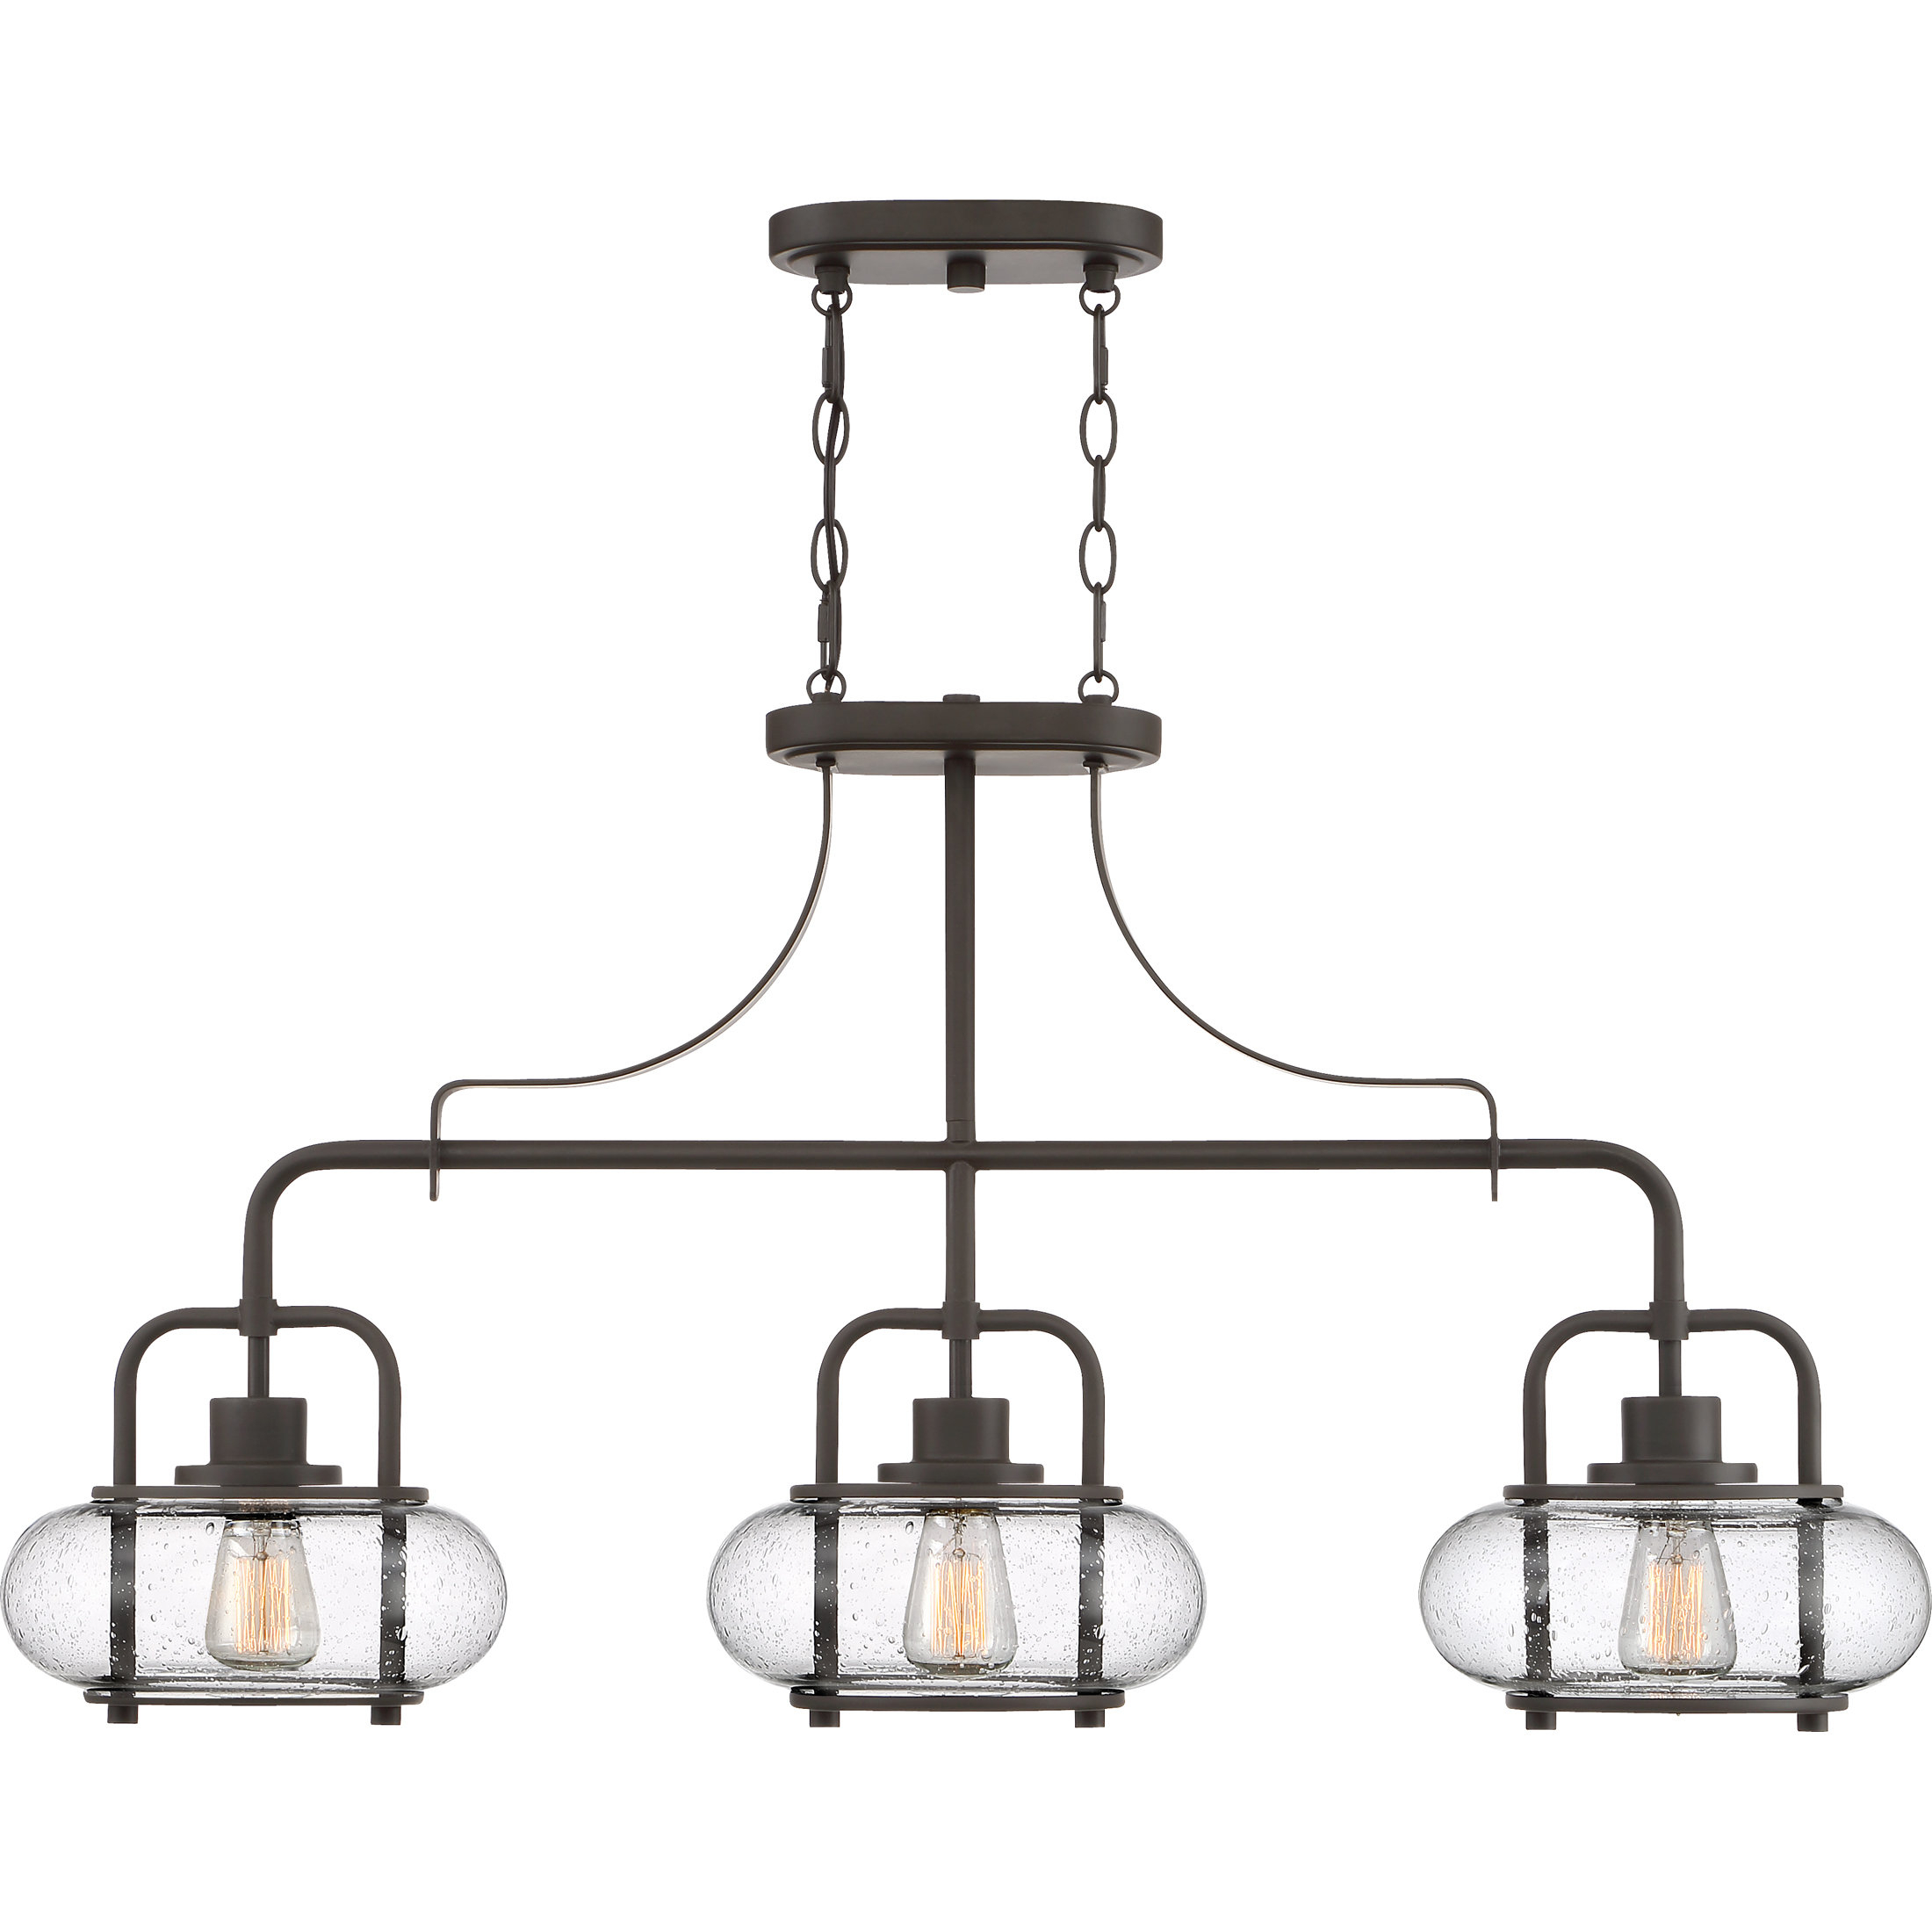 Fashionable Martinique 3 Light Kitchen Island Dome Pendants With Regard To Braxton 3 Light Kitchen Island Linear Pendant (View 6 of 25)